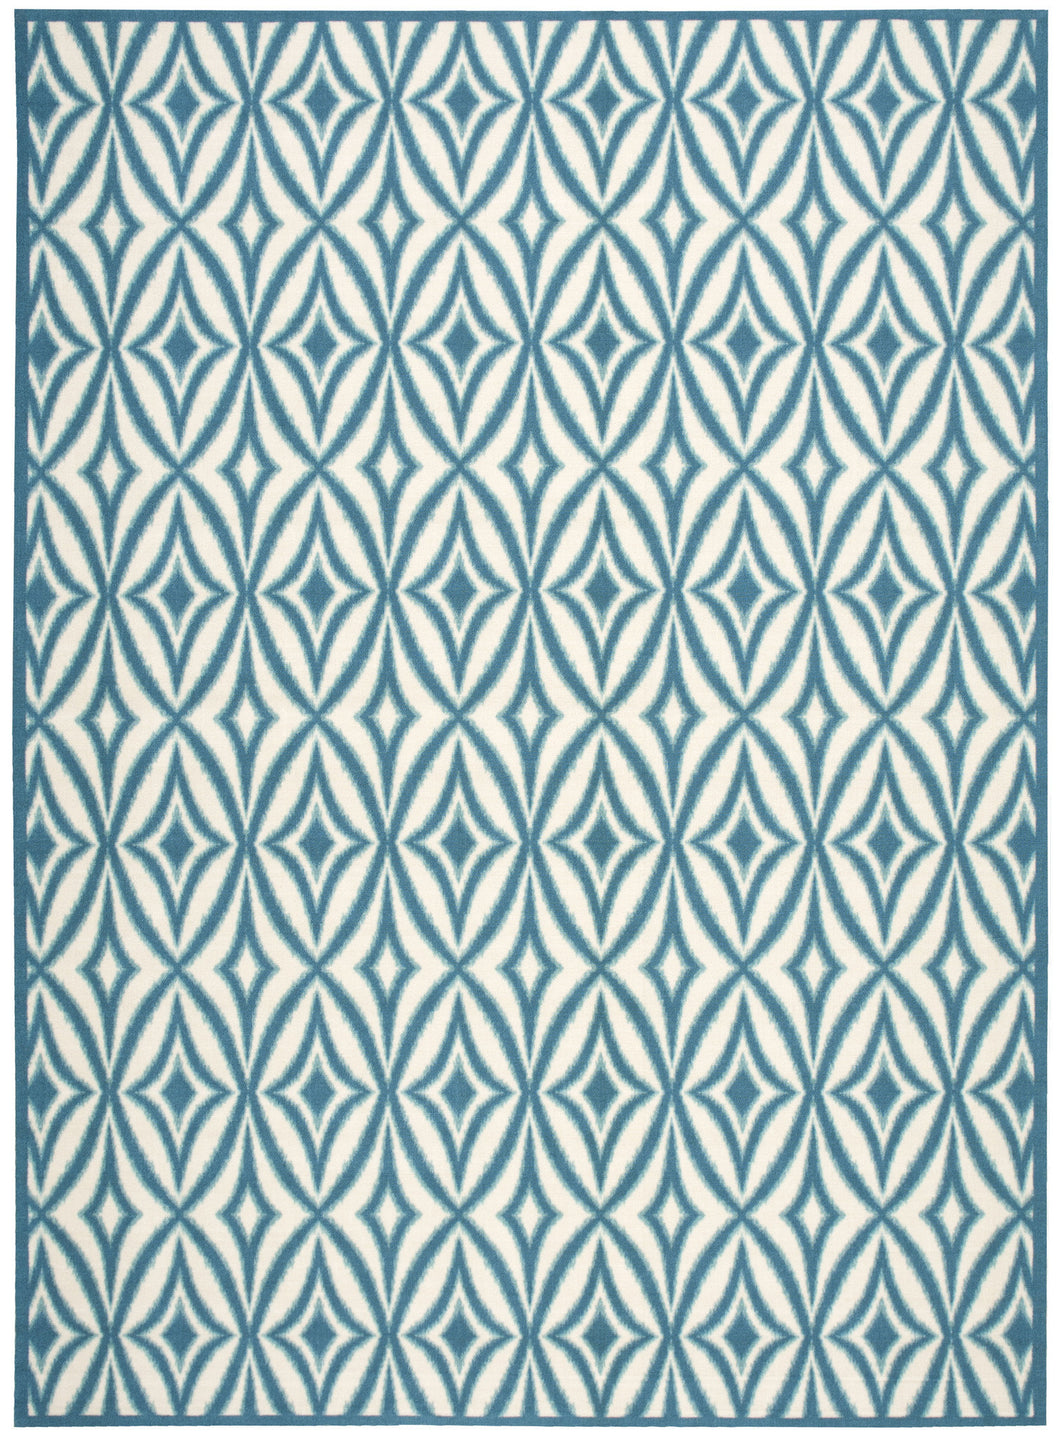 Waverly Sun & Shade Centro Azure Area Rug By Nourison SND19 AZU